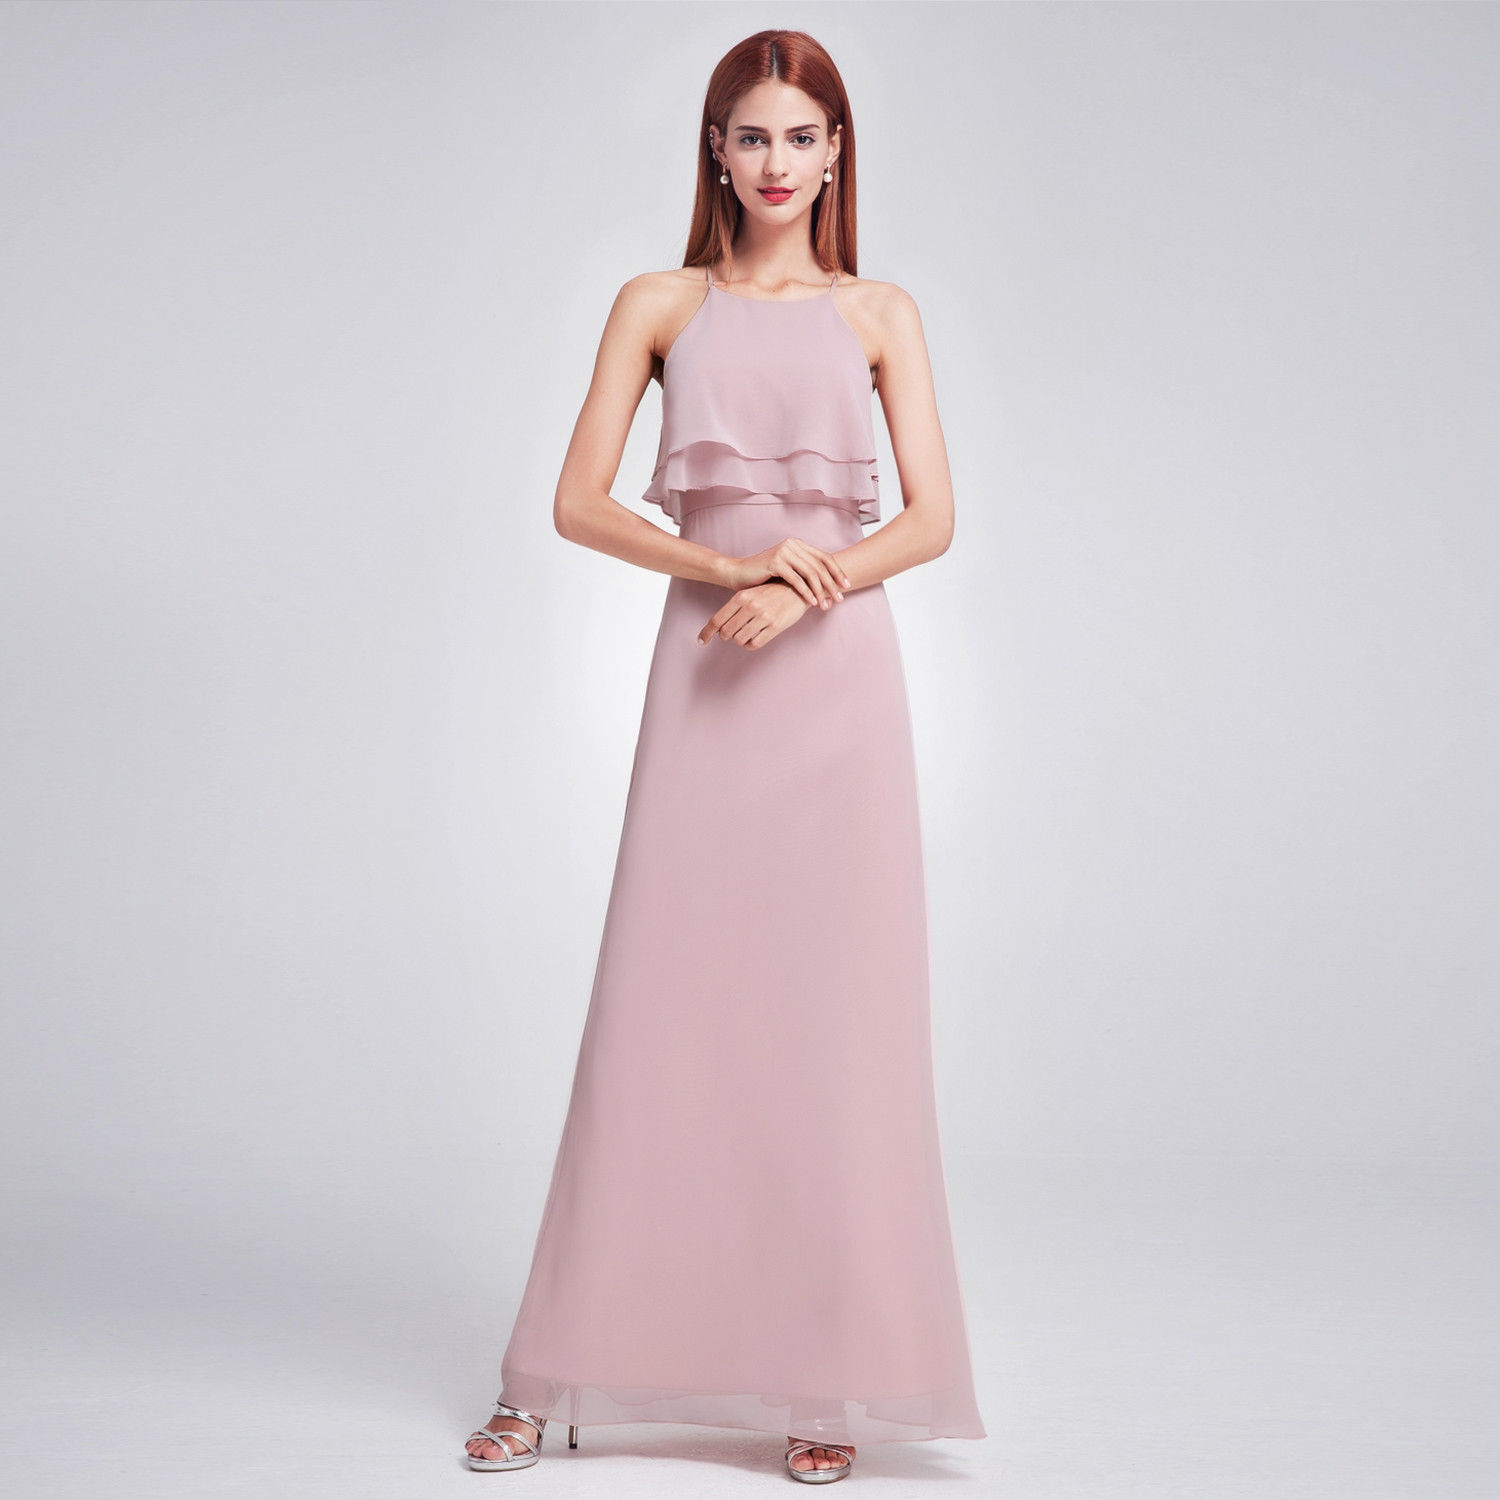 f8698880aff7c Amazing Sexy Long Halter Bridesmaid Party Dress Size 12 07137 Ever ...